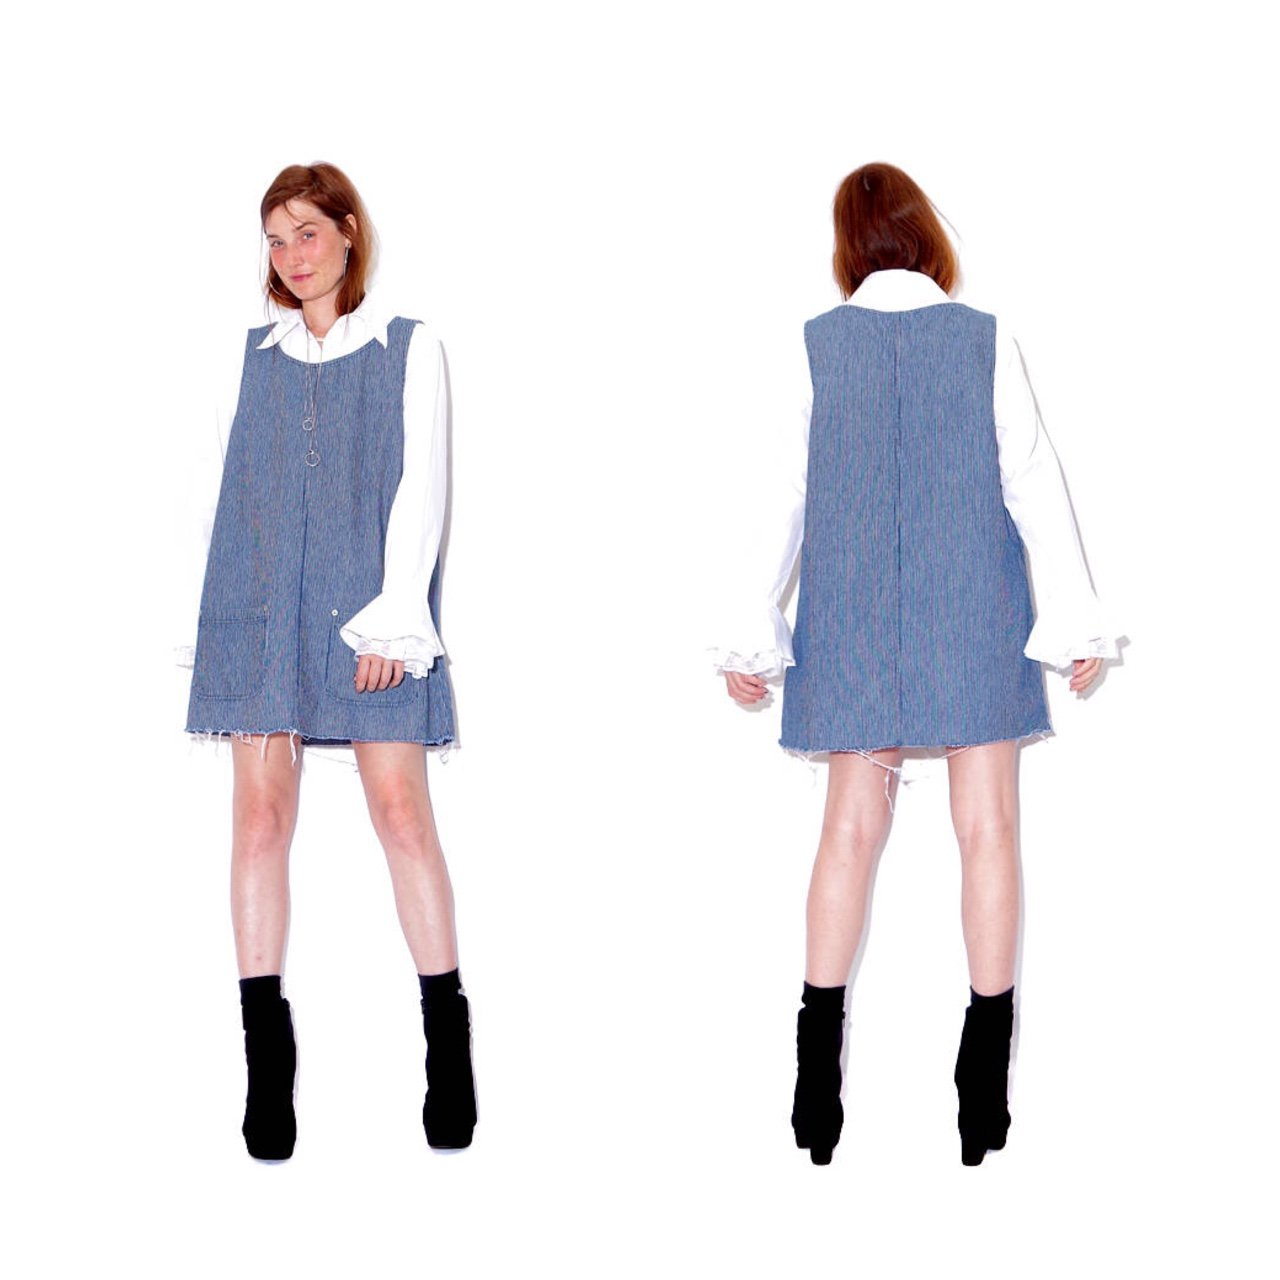 b16e0ffd535 omg TRAIN STRIPES 90s Denim Overall Dress   pinafore dress   - Depop